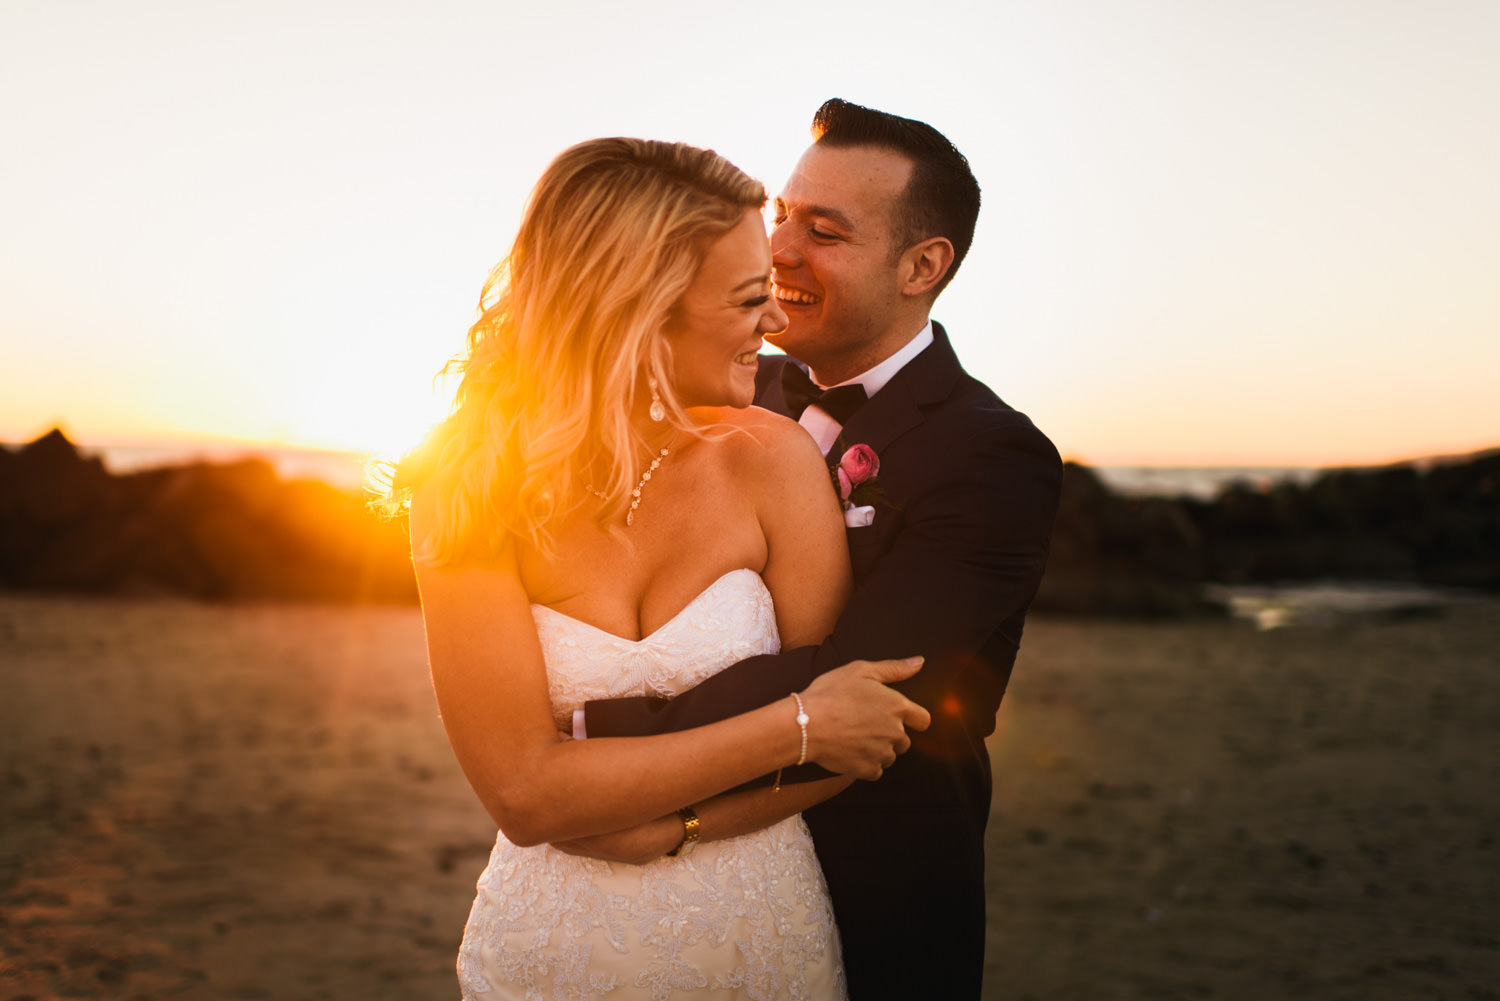 sunset bride and groom portraits on venice beach - Best LA Wedding Photography